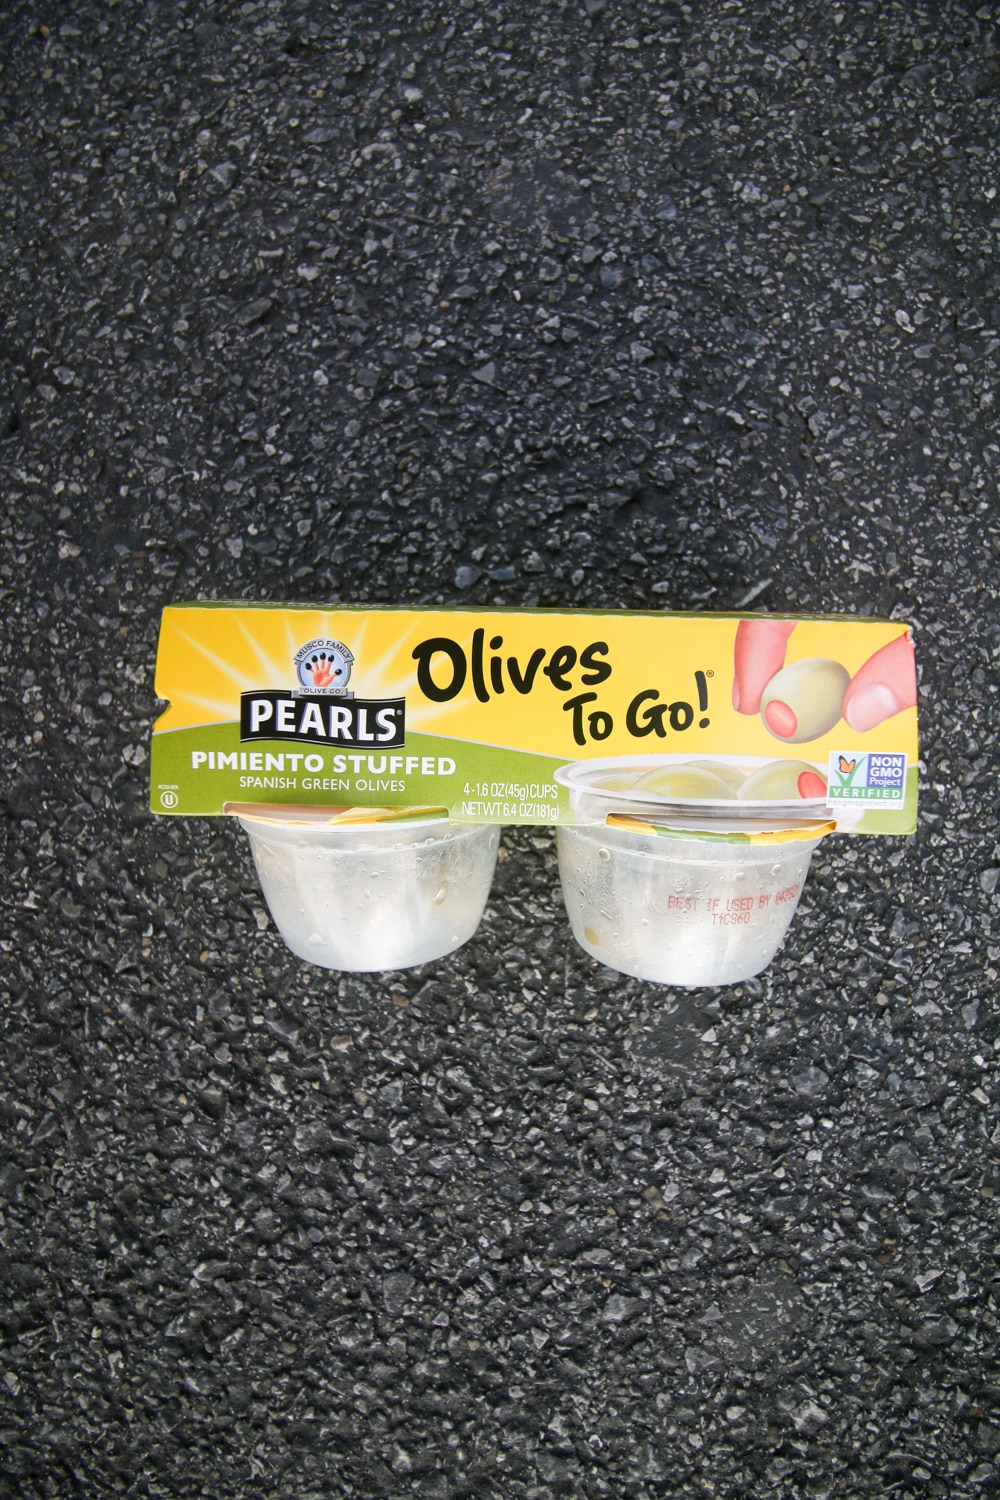 A package of olive snack packs.